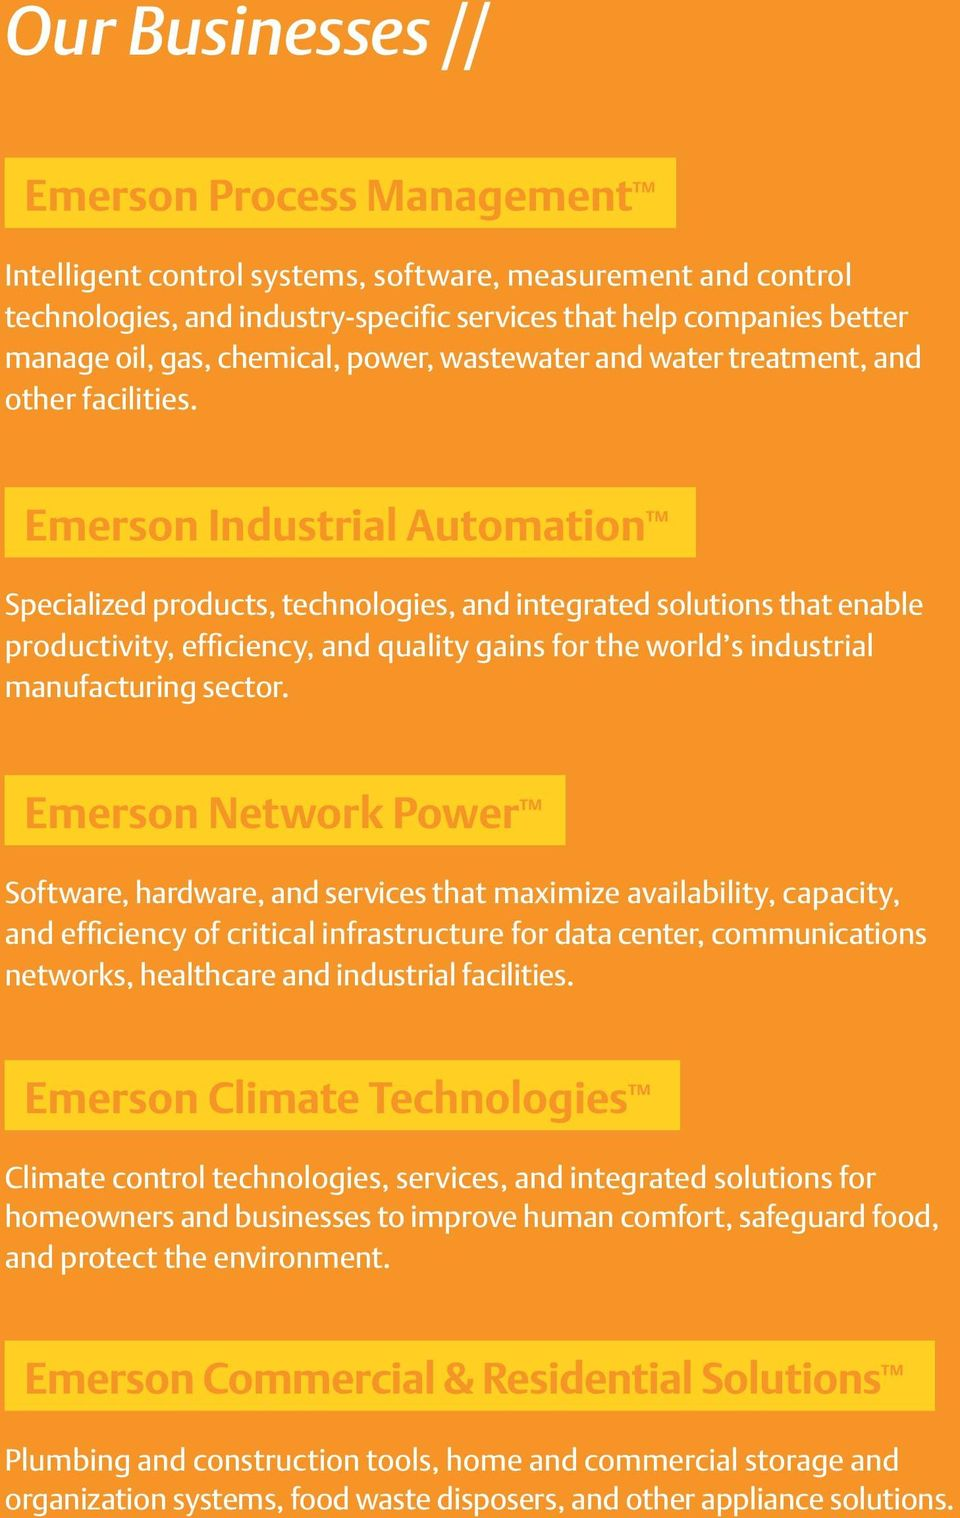 Emerson Industrial Automation Specialized products, technologies, and integrated solutions that enable productivity, efficiency, and quality gains for the world s industrial manufacturing sector.